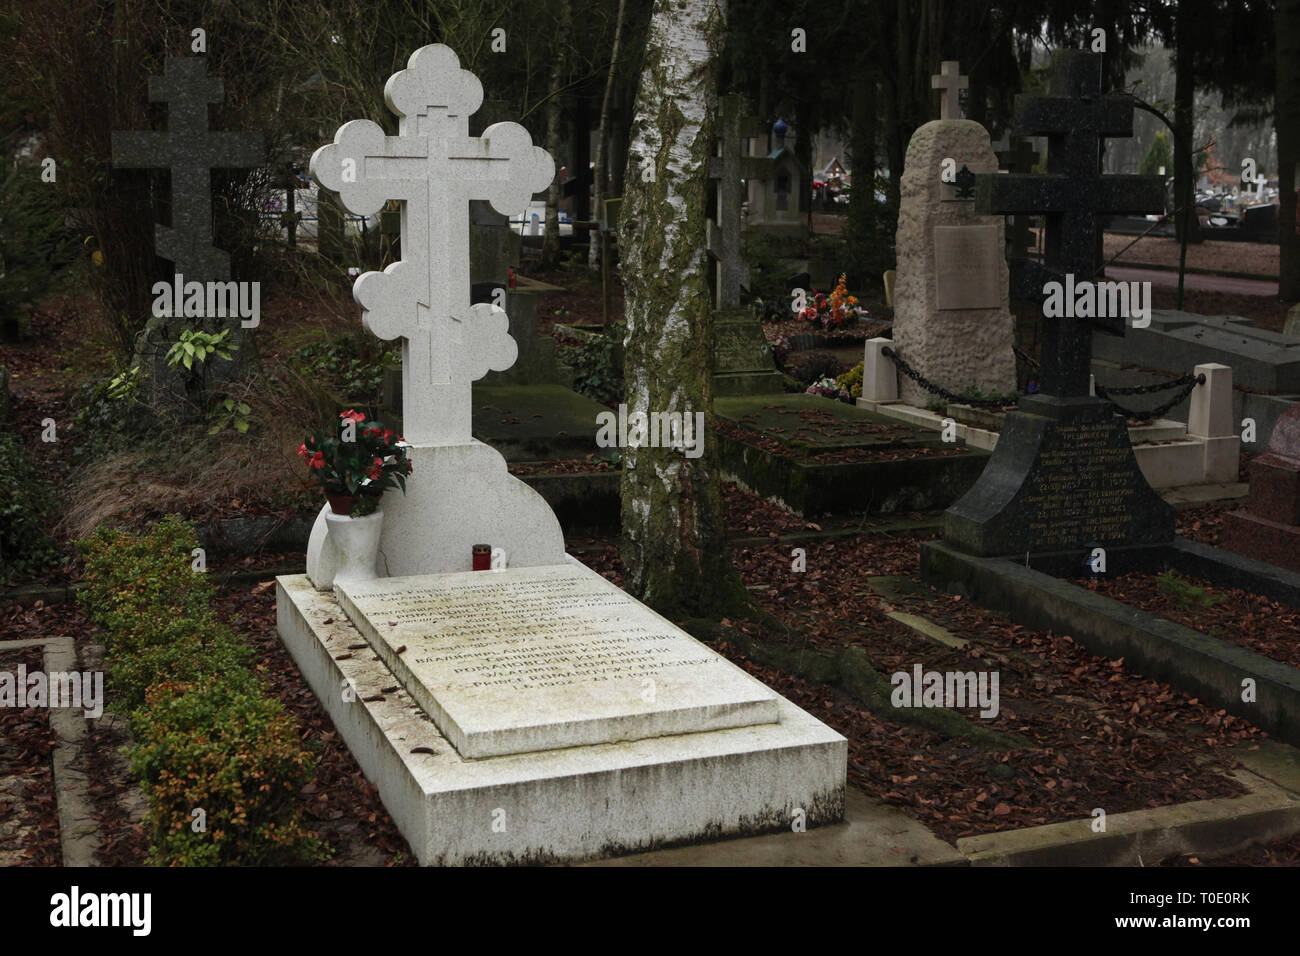 Grave of Grand Duke Andrei Vladimirovich of Russia (1879-1956) and his wife Russian ballerina Mathilde Kschessinska (1872-1971) known as Princess Romanovskaya-Krasinskaya after her marriage at the Russian Cemetery in Sainte-Geneviève-des-Bois (Cimetière russe de Sainte-Geneviève-des-Bois) near Paris, France. Their son Prince Vladimir Romanovsky-Krasinsky (1902-1974) are also buried in the grave. - Stock Image